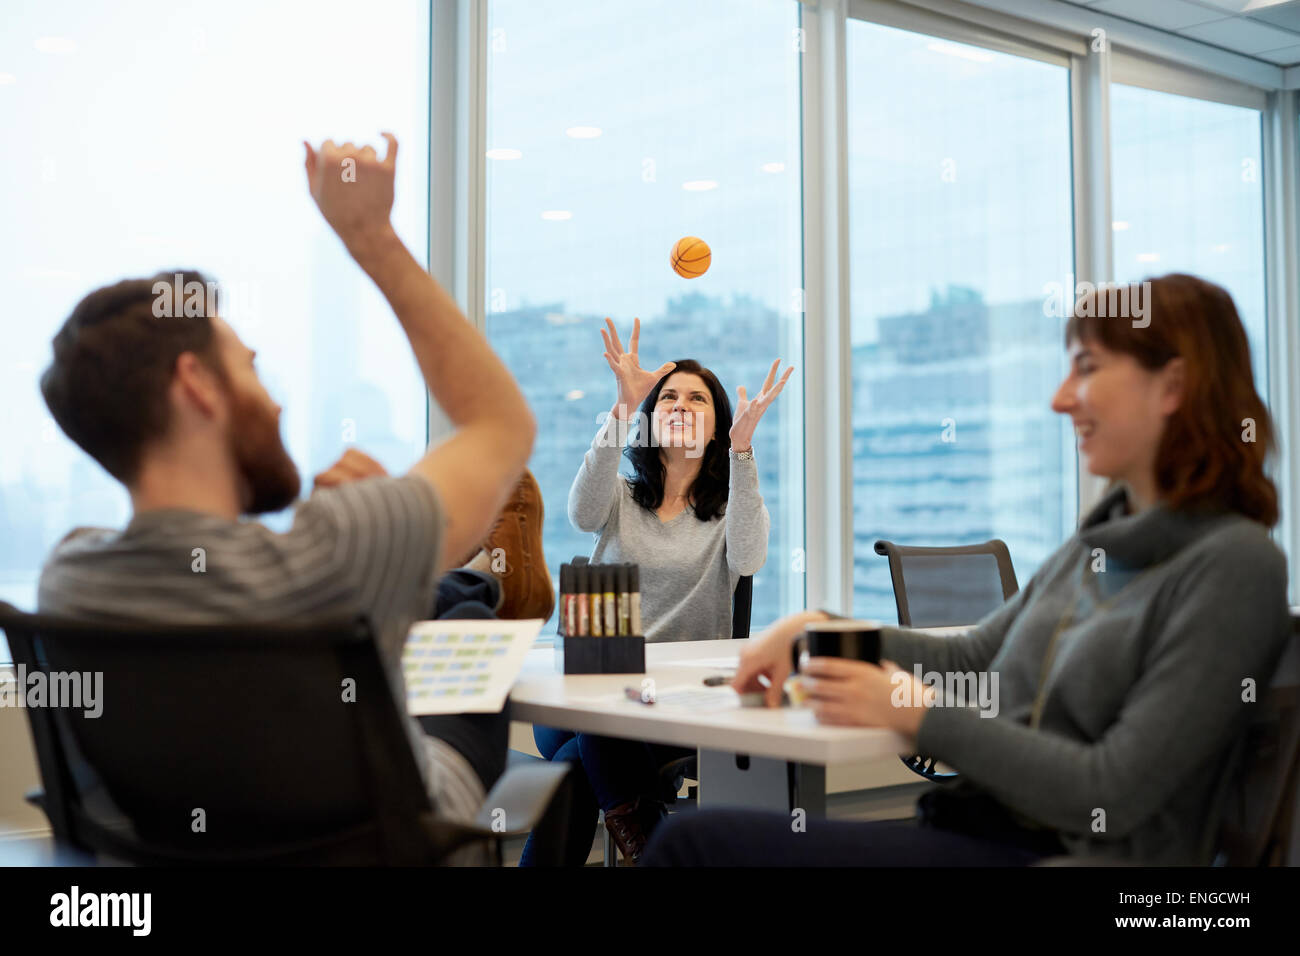 Three business people, two women and a man, reaching up to catch a ball. - Stock Image